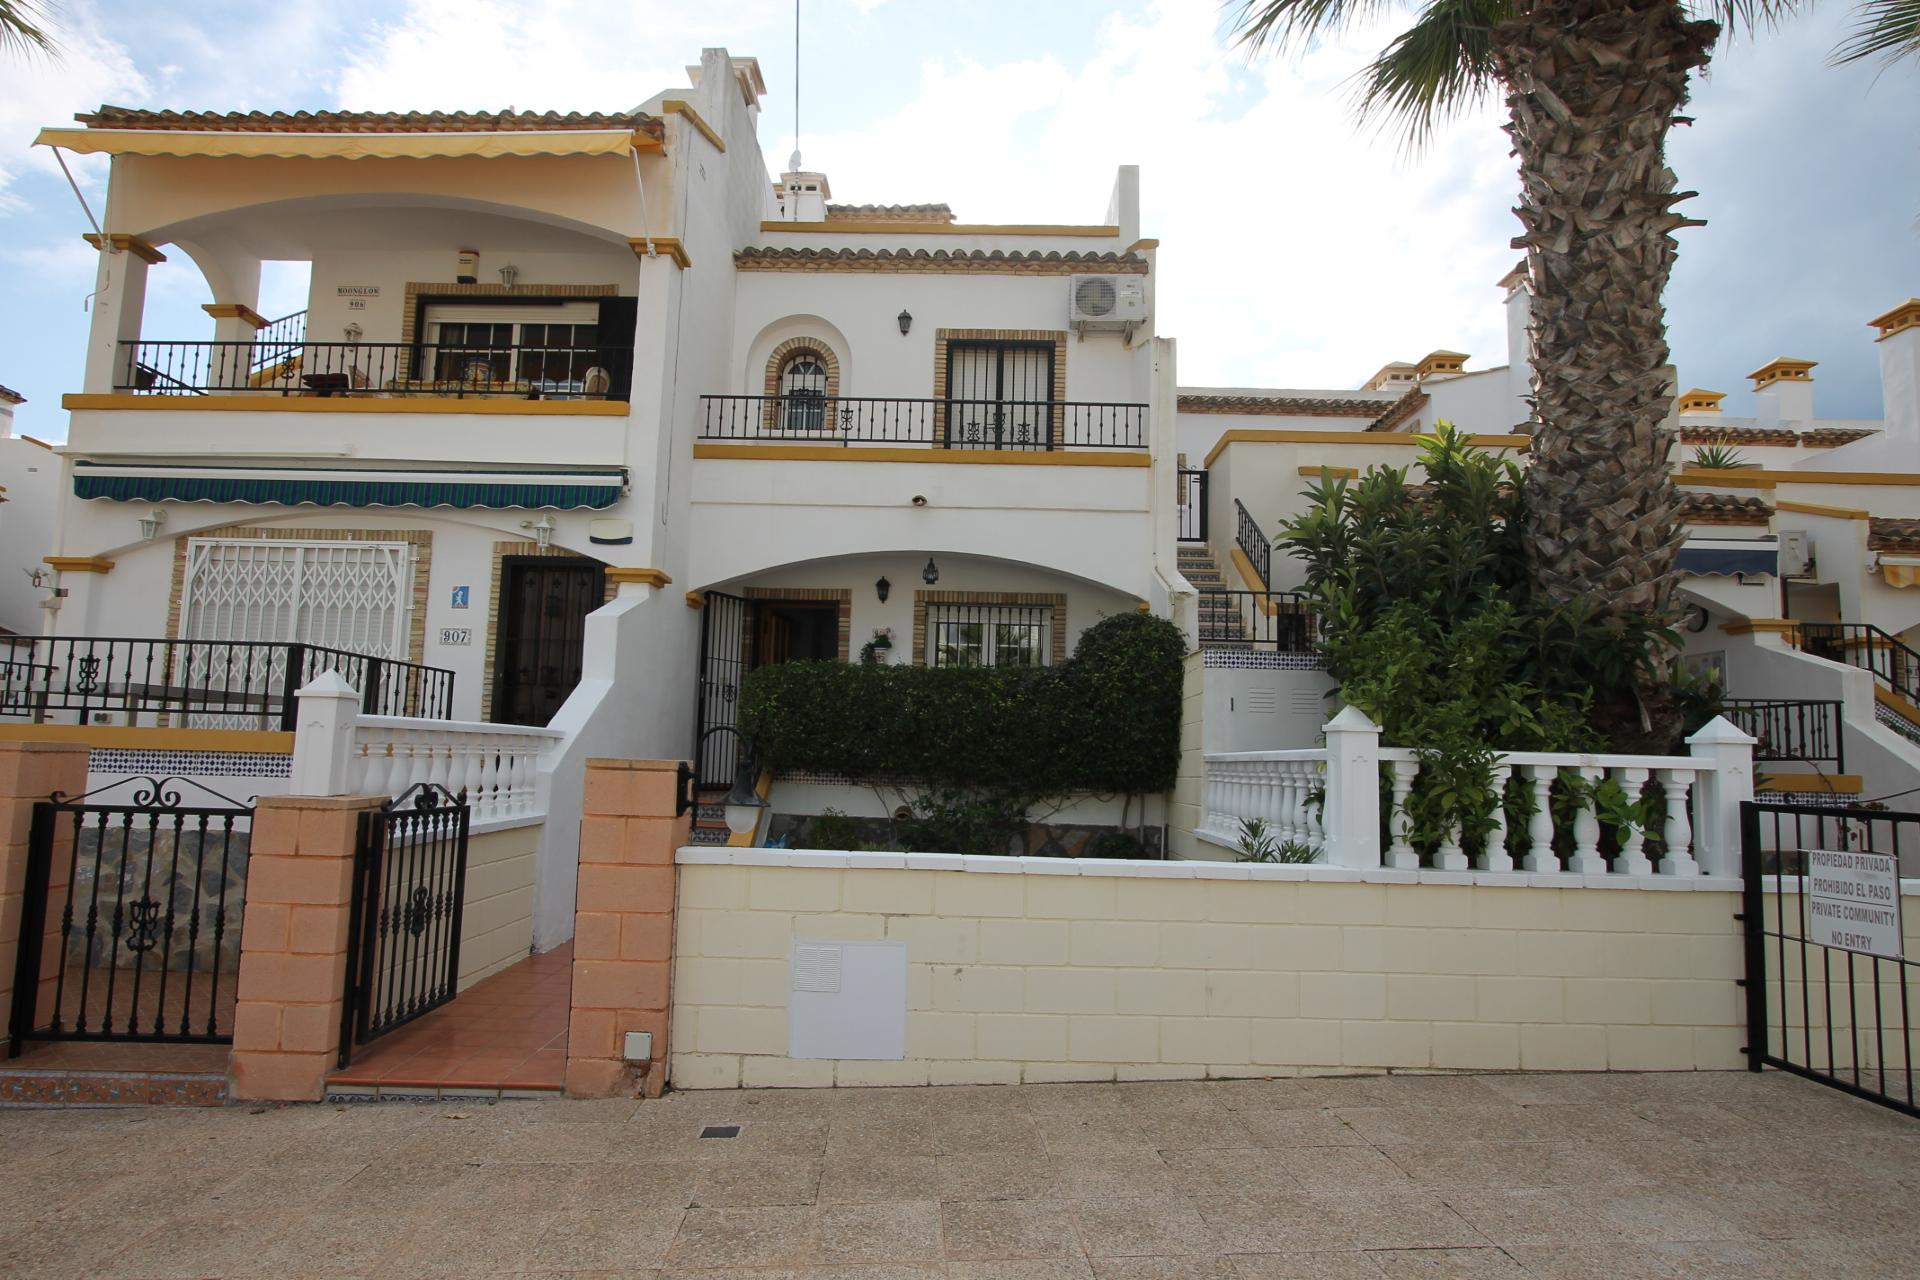 Townhouse in Los Dolses (Alicante)